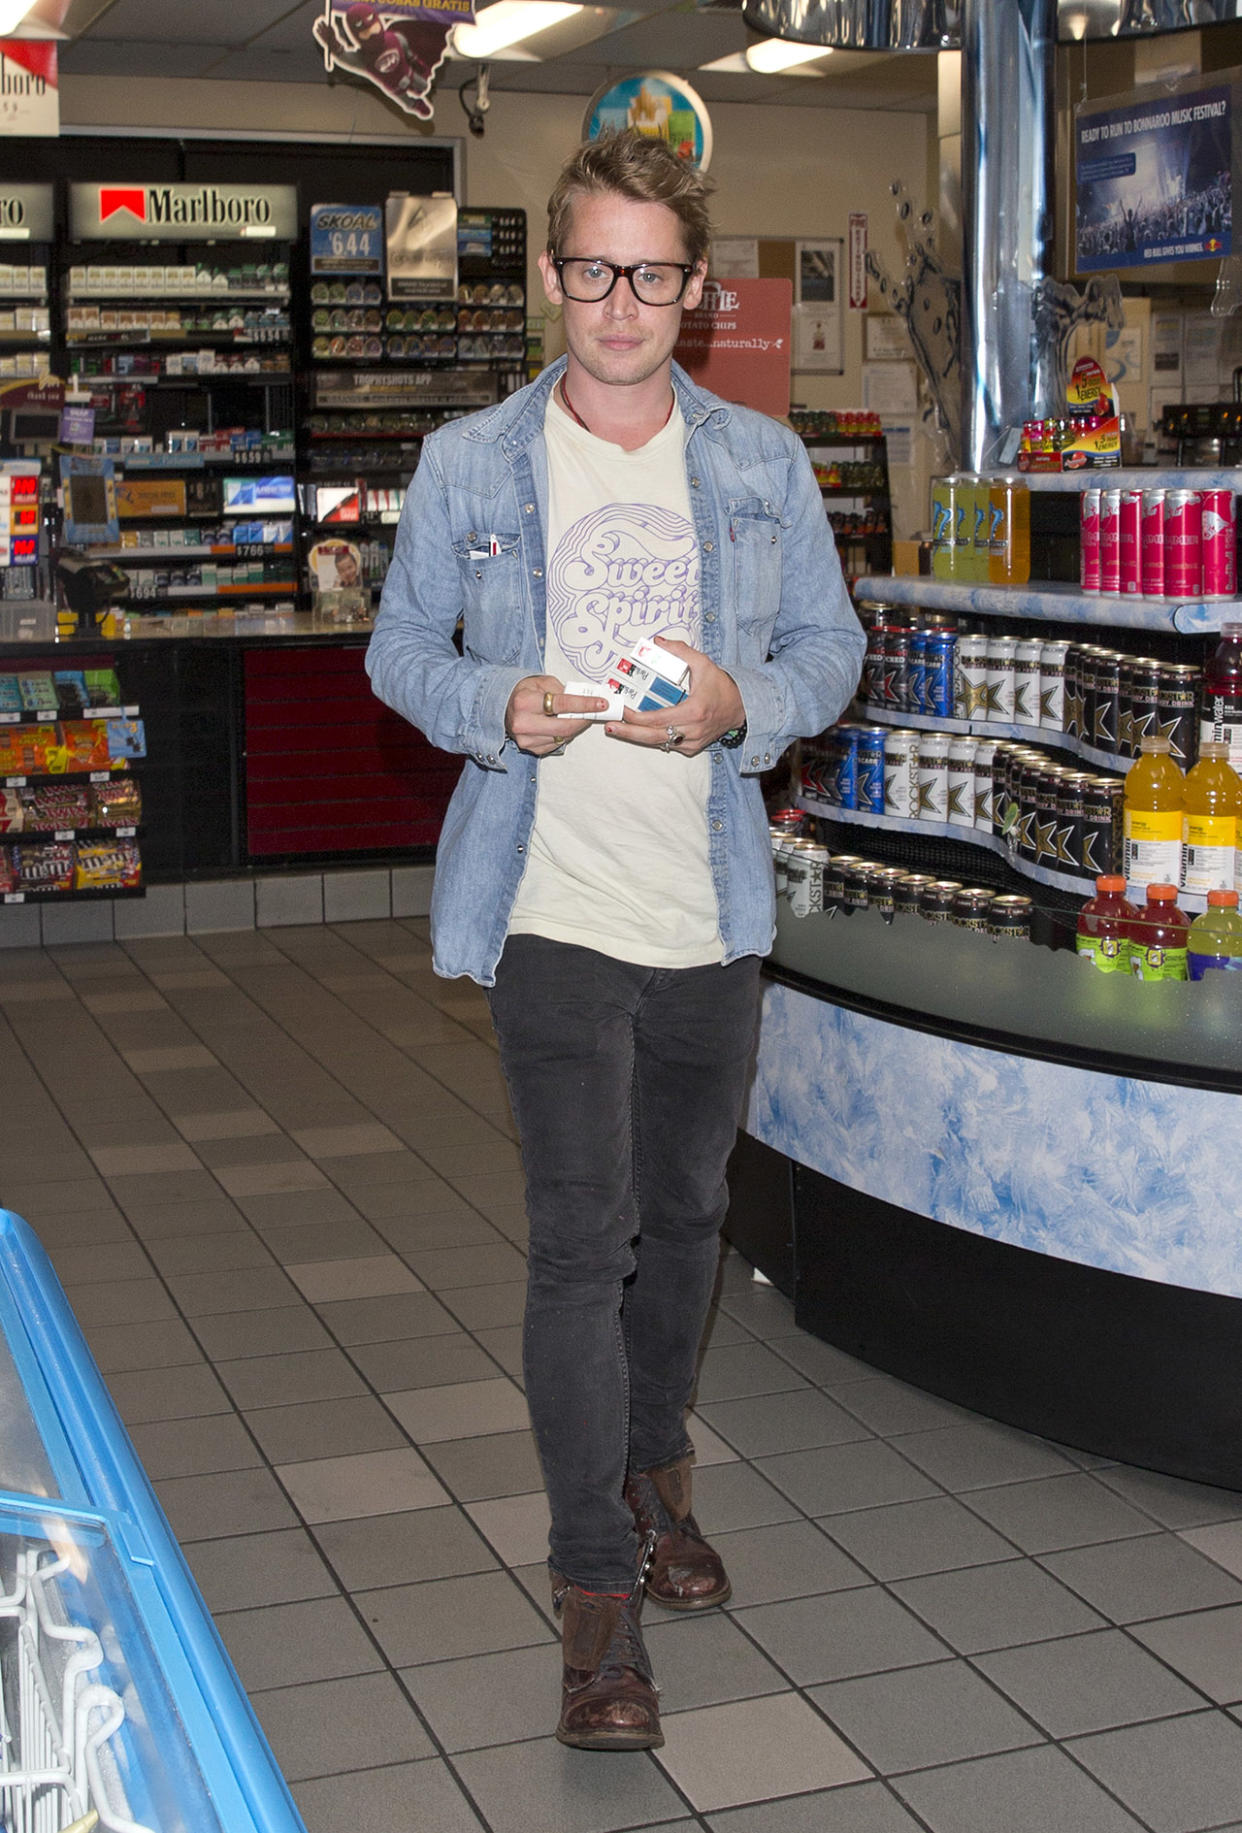 Child Actor Macaulay Culkin was seen picking up Three packets of Parliament Cigarettes as a Gas station on Sunset Blvd in West Hollywood, CA. Macaulay was looming fresh fced and in good spirits as he went to the gas station but decided to cover his face on the way out. He was in the back of the car with with Brenda Song while actor Seth Green sat in the front. <P> Pictured: Macaulay Culkin <B>Ref: SPL1543444  240717  </B><BR/> Picture by: SPW / Splash News<BR/> </P><P> <B>Splash News and Pictures</B><BR/> Los Angeles:310-821-2666<BR/> New York:212-619-2666<BR/> London:870-934-2666<BR/> photodesk@splashnews.com<BR/> </P>